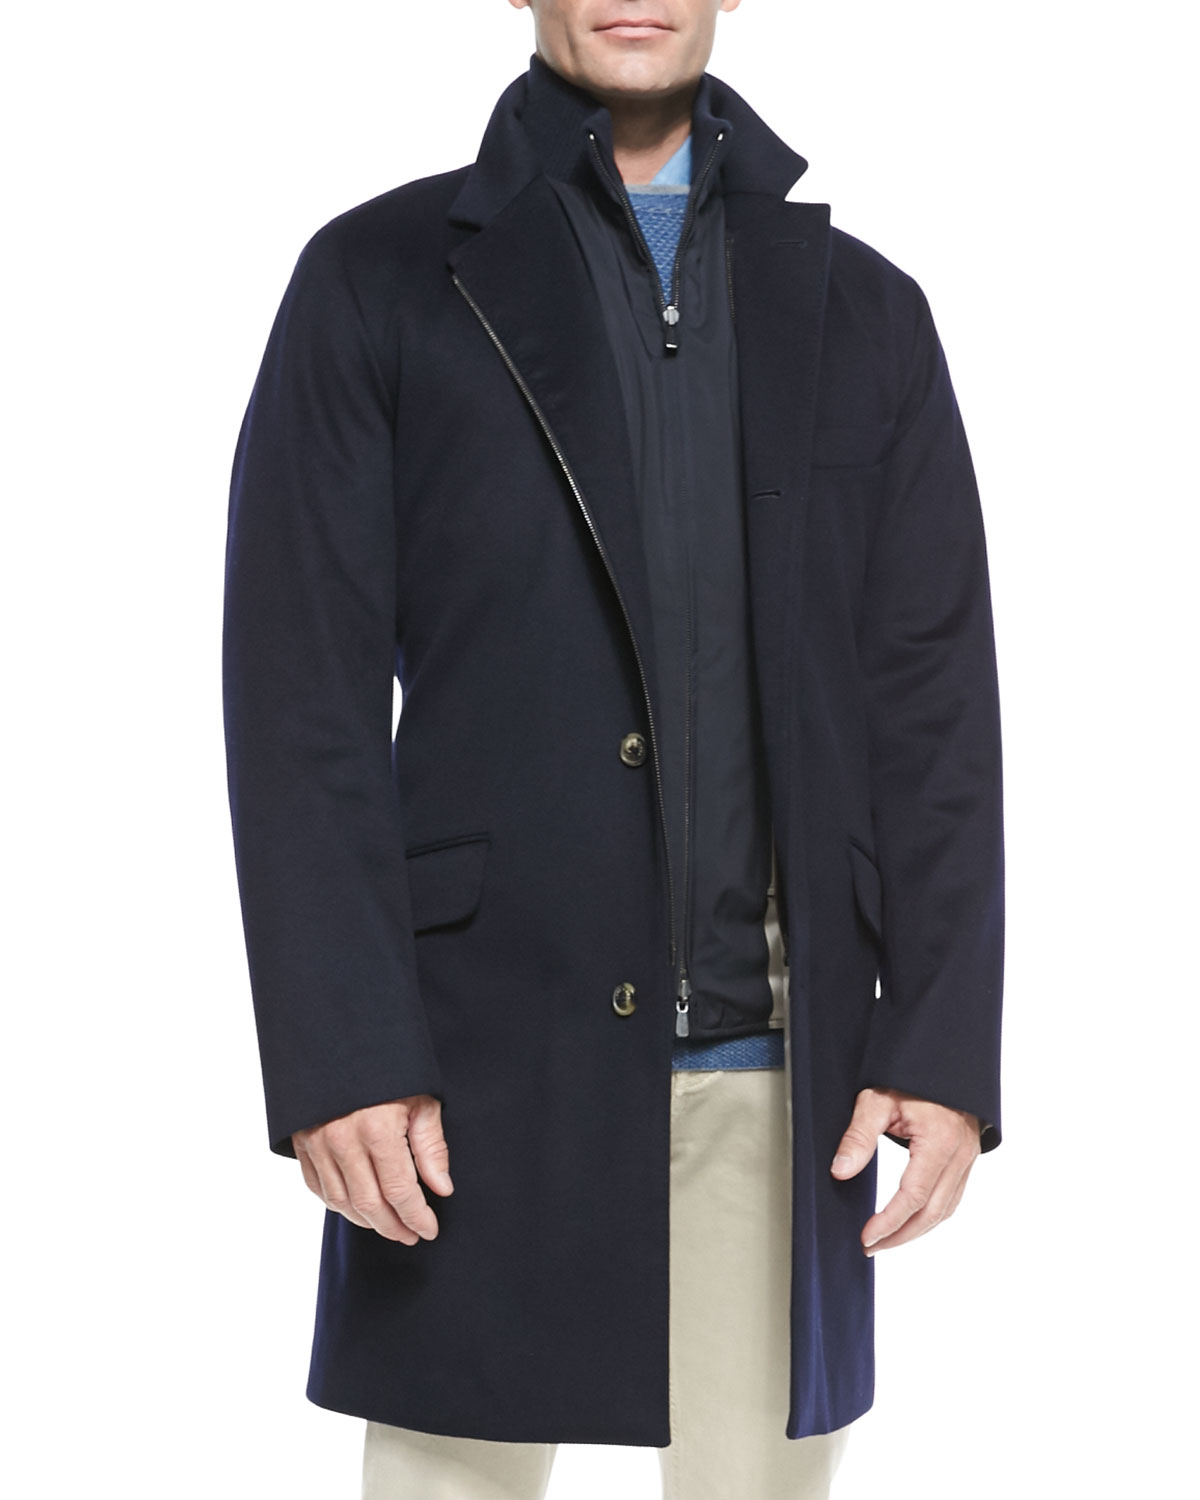 27a559234460 loro-piana-blue-3-in-1-martingala-storm-system-cashmere-coat-product-1-21765119-0-782012606-normal.jpeg